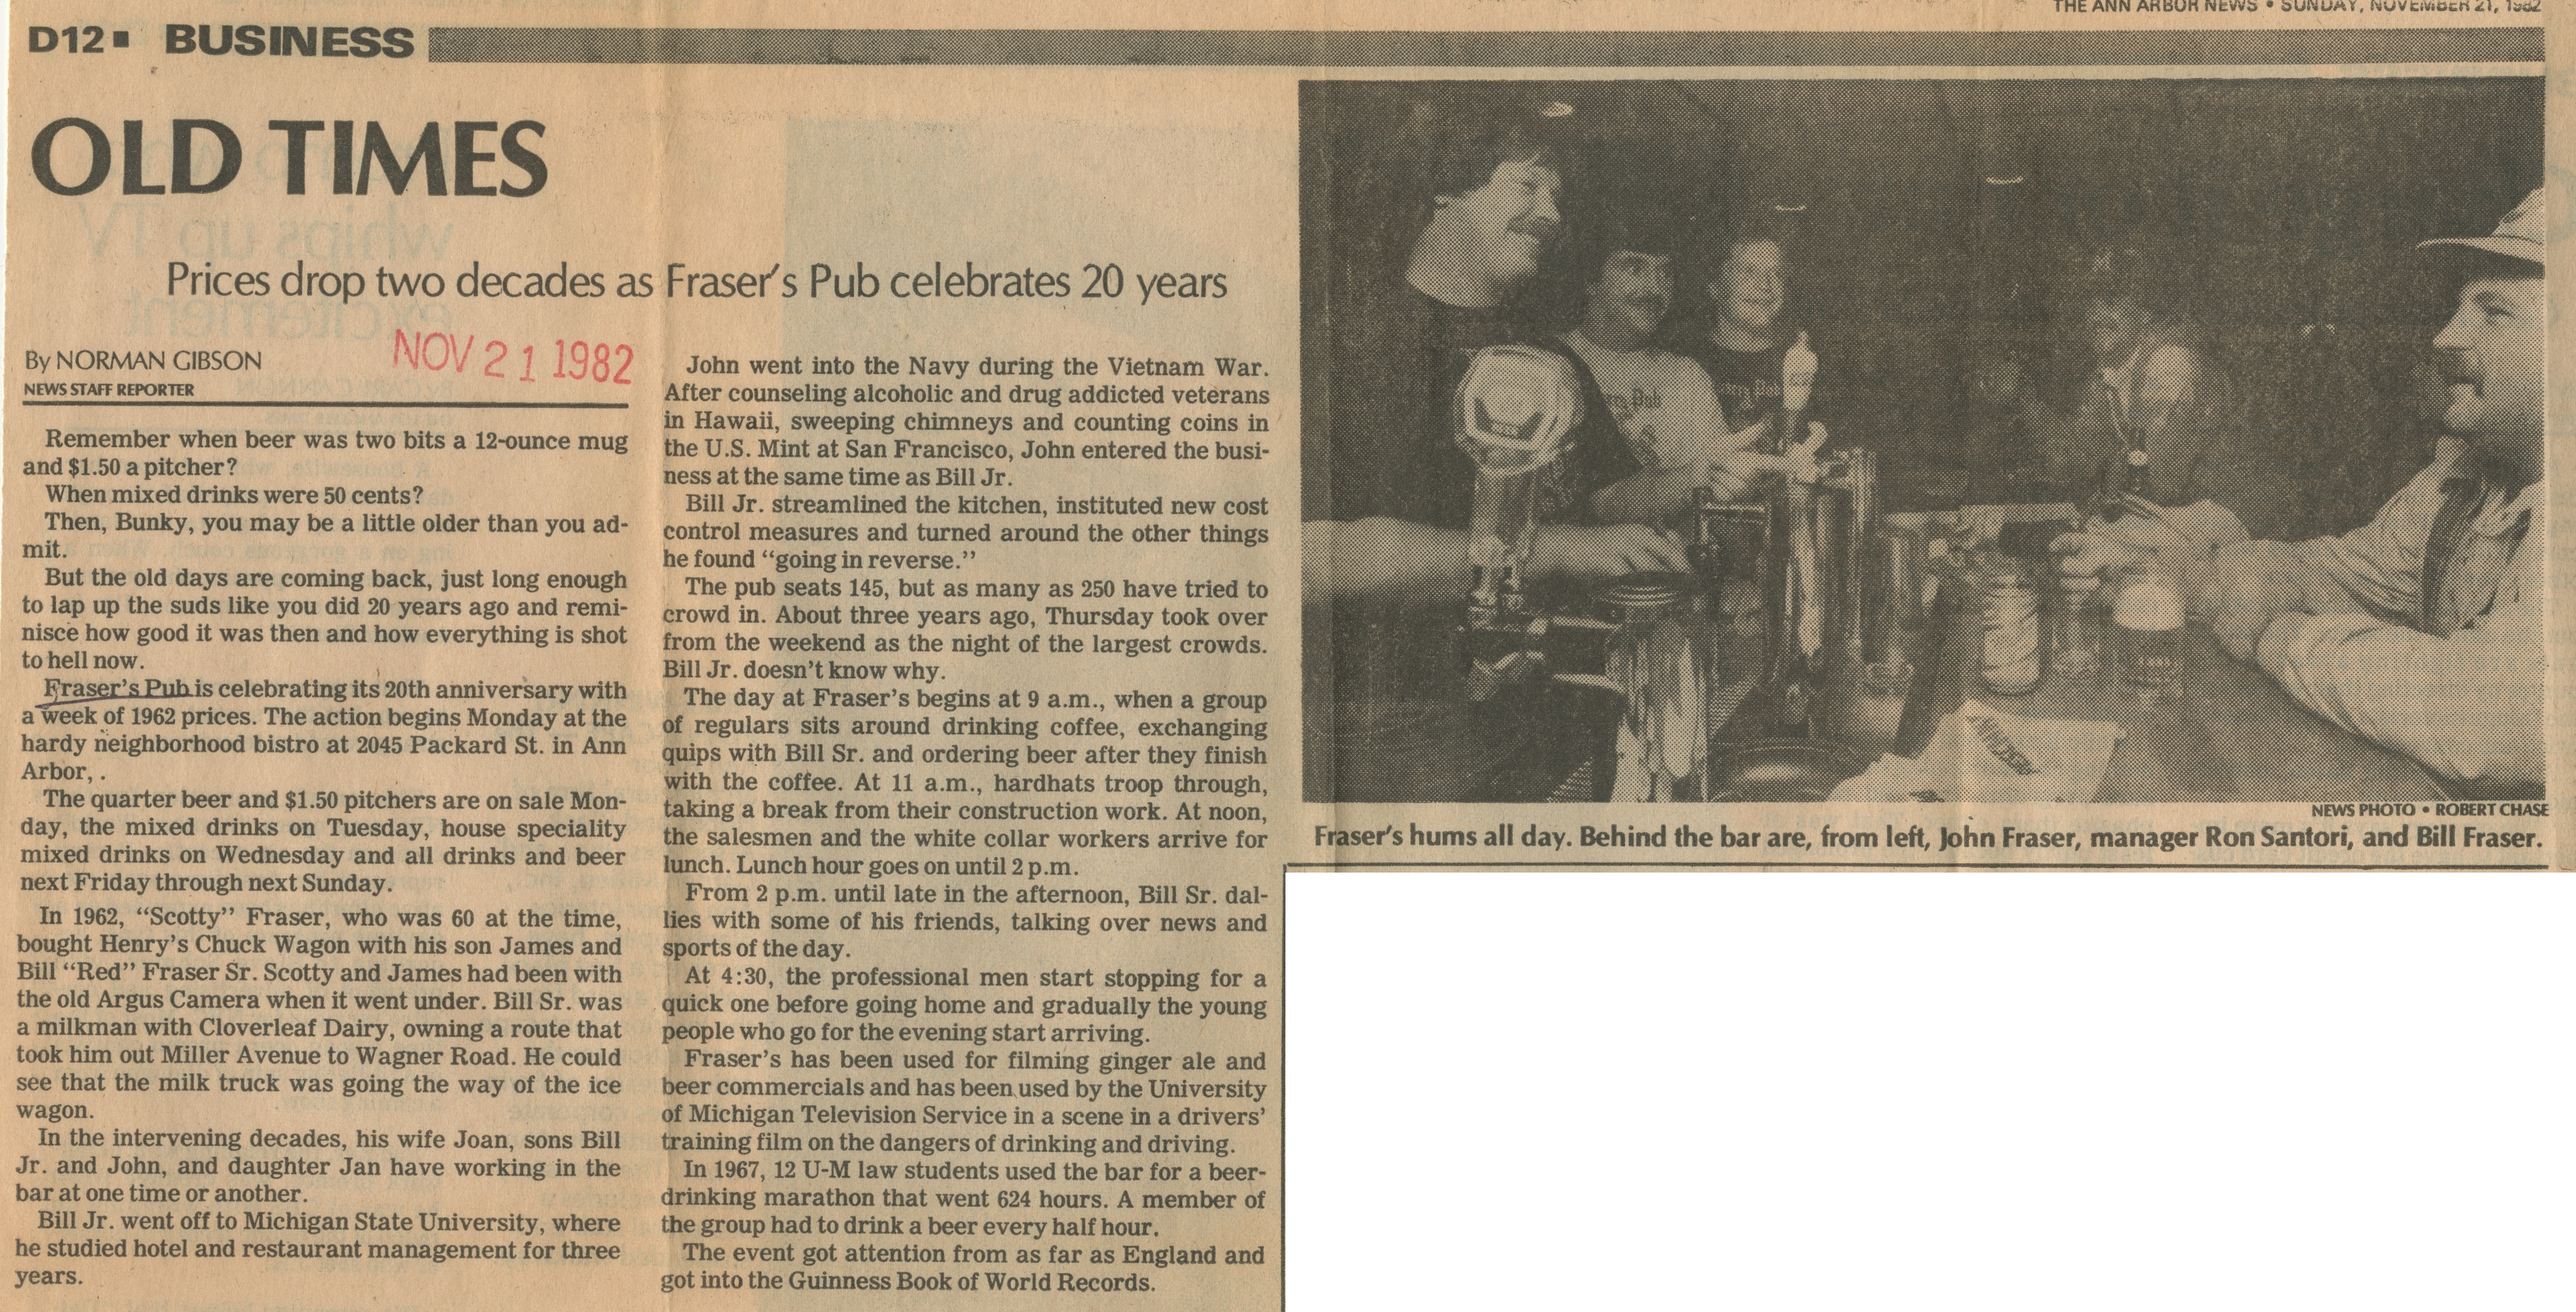 Old Times: Prices Drop Two Decades as Fraser's Pub Celebrates 20 Years image